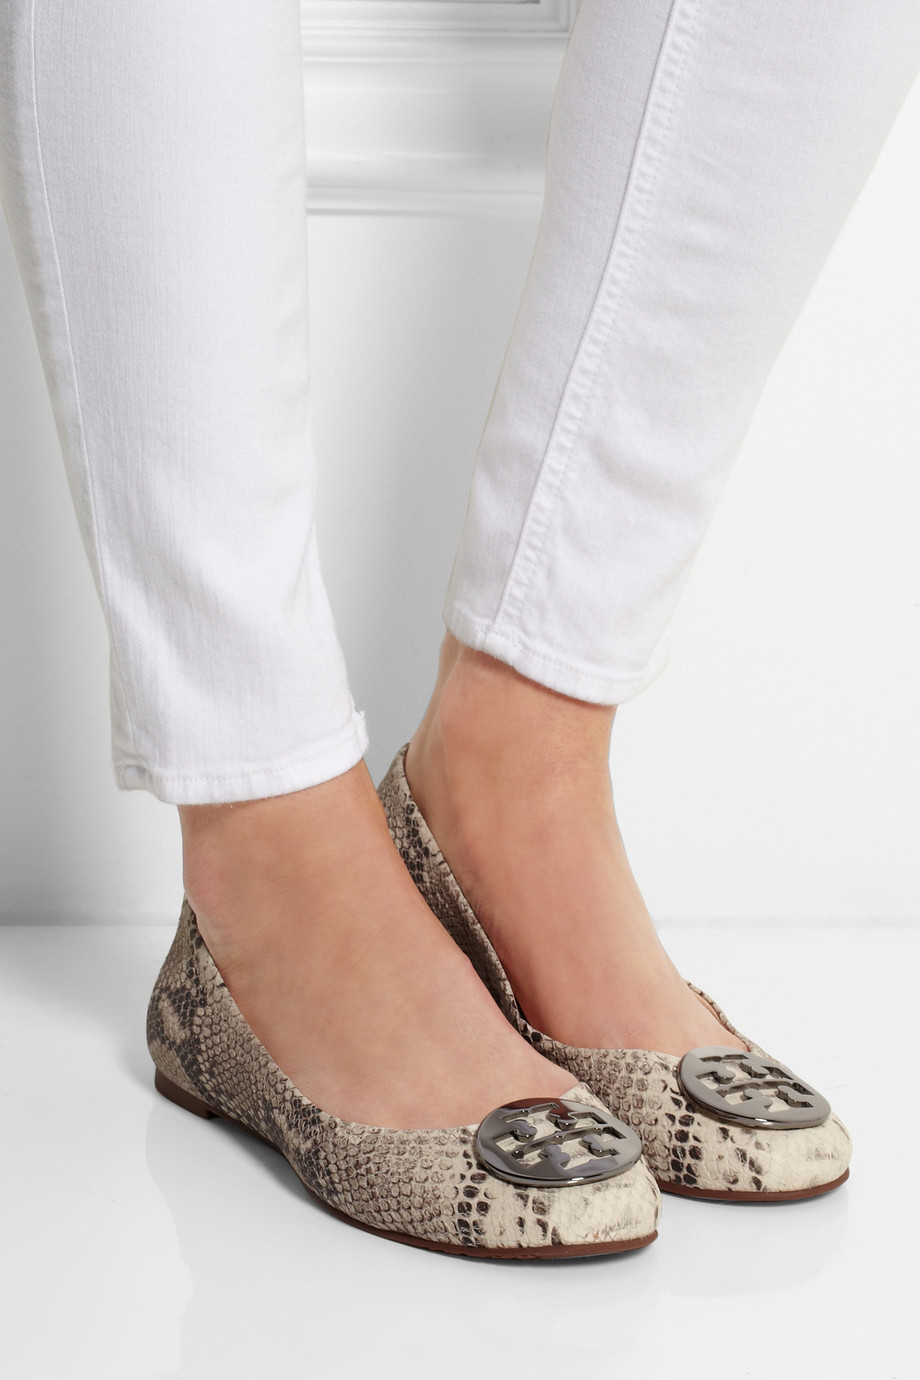 cdb174f76427 Lyst - Tory Burch Reva Snake-Effect Leather Ballet Flats in Natural